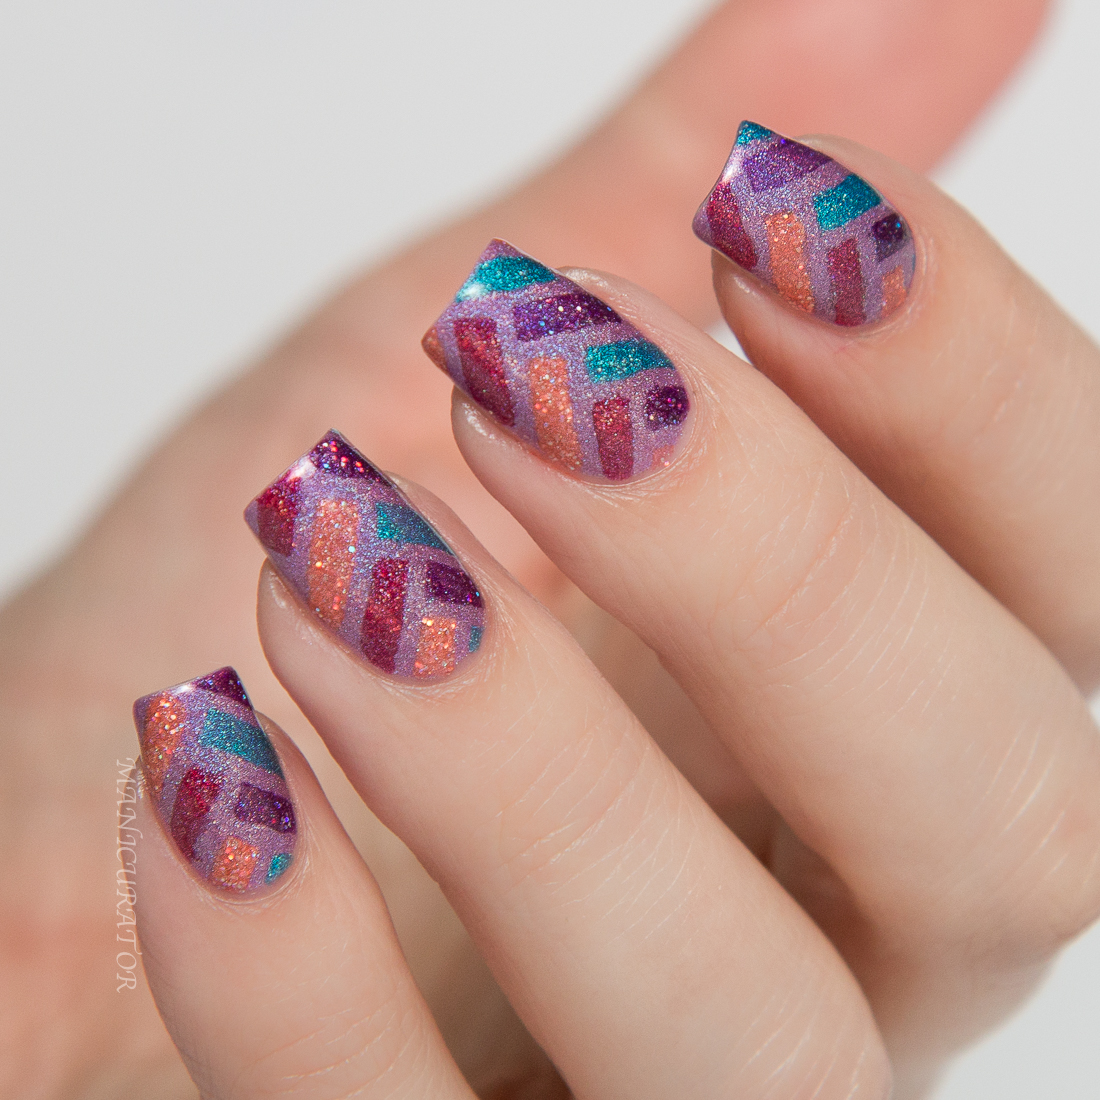 Glam-Whoosh-Pop-Smash-Krunch-Zoom-Herringbone-Nail